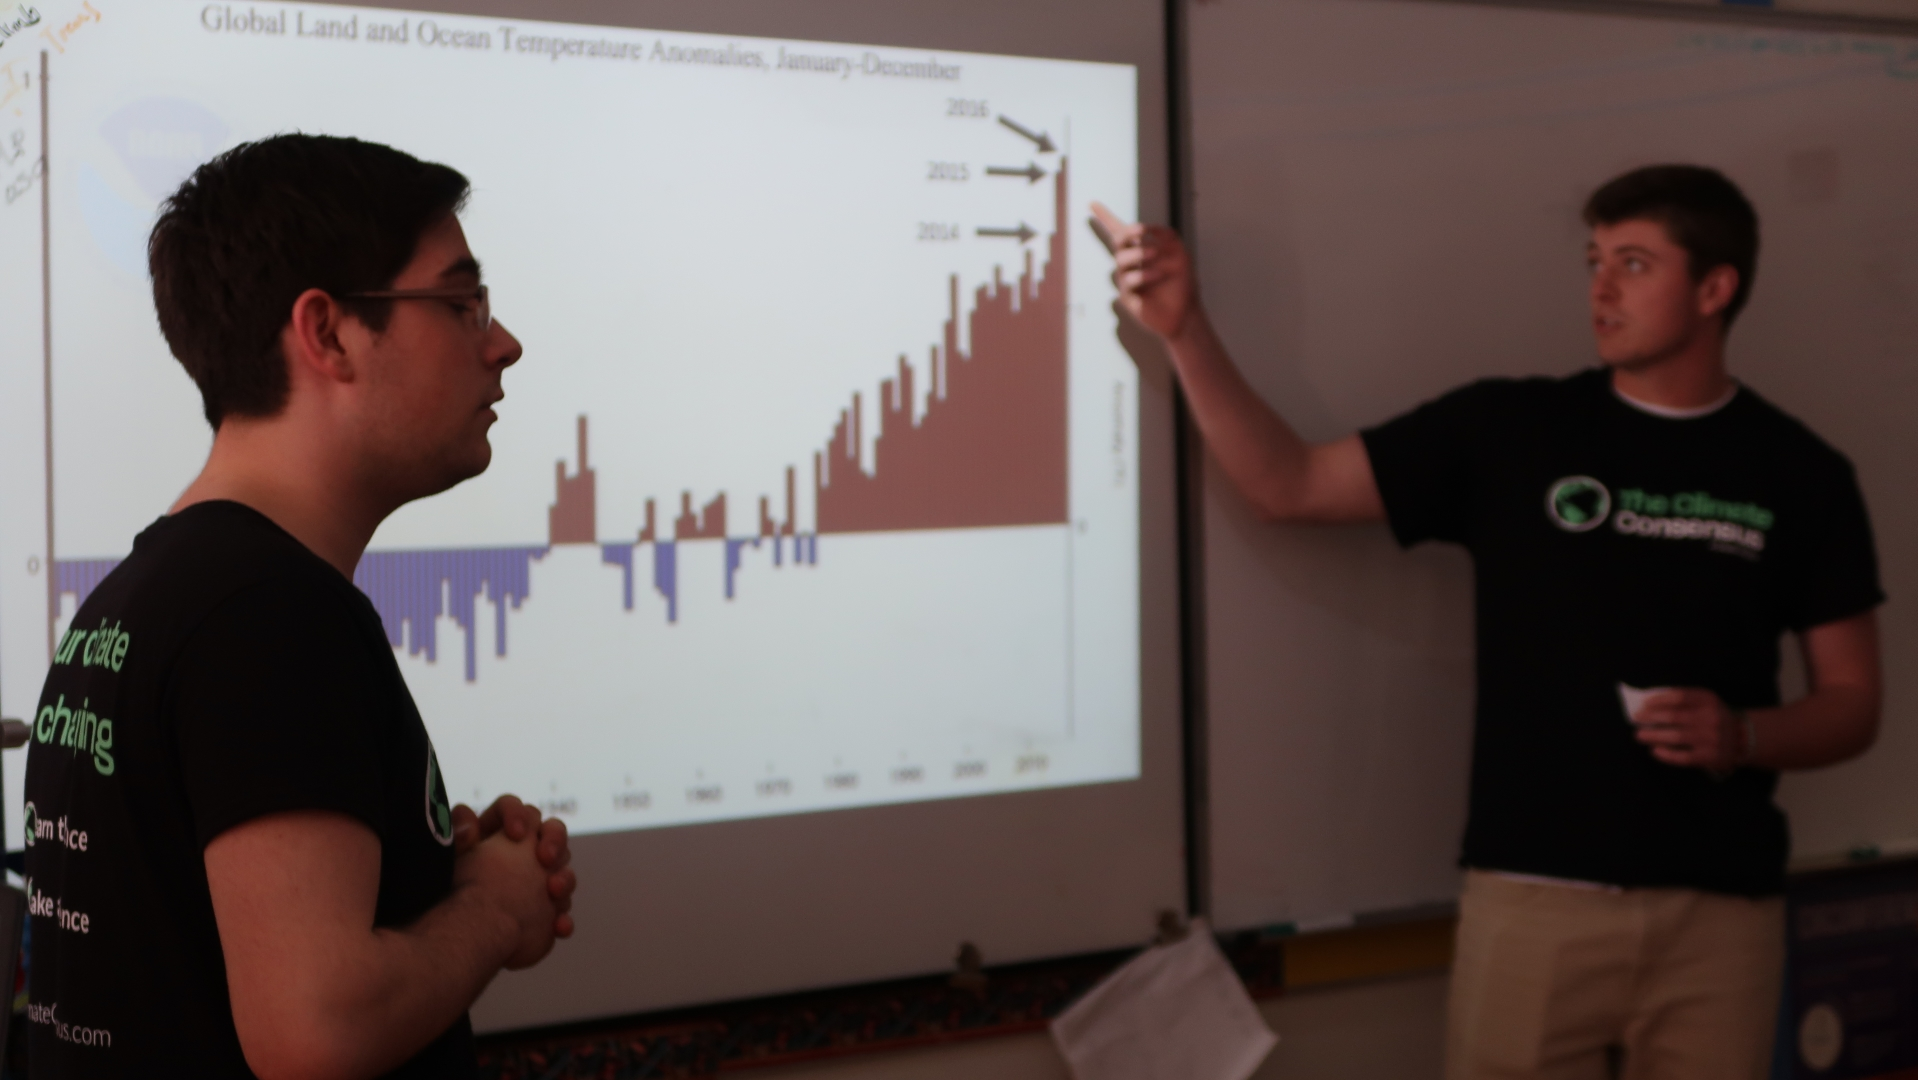 Students in the Climate Change Communication group discuss climate science at local schools